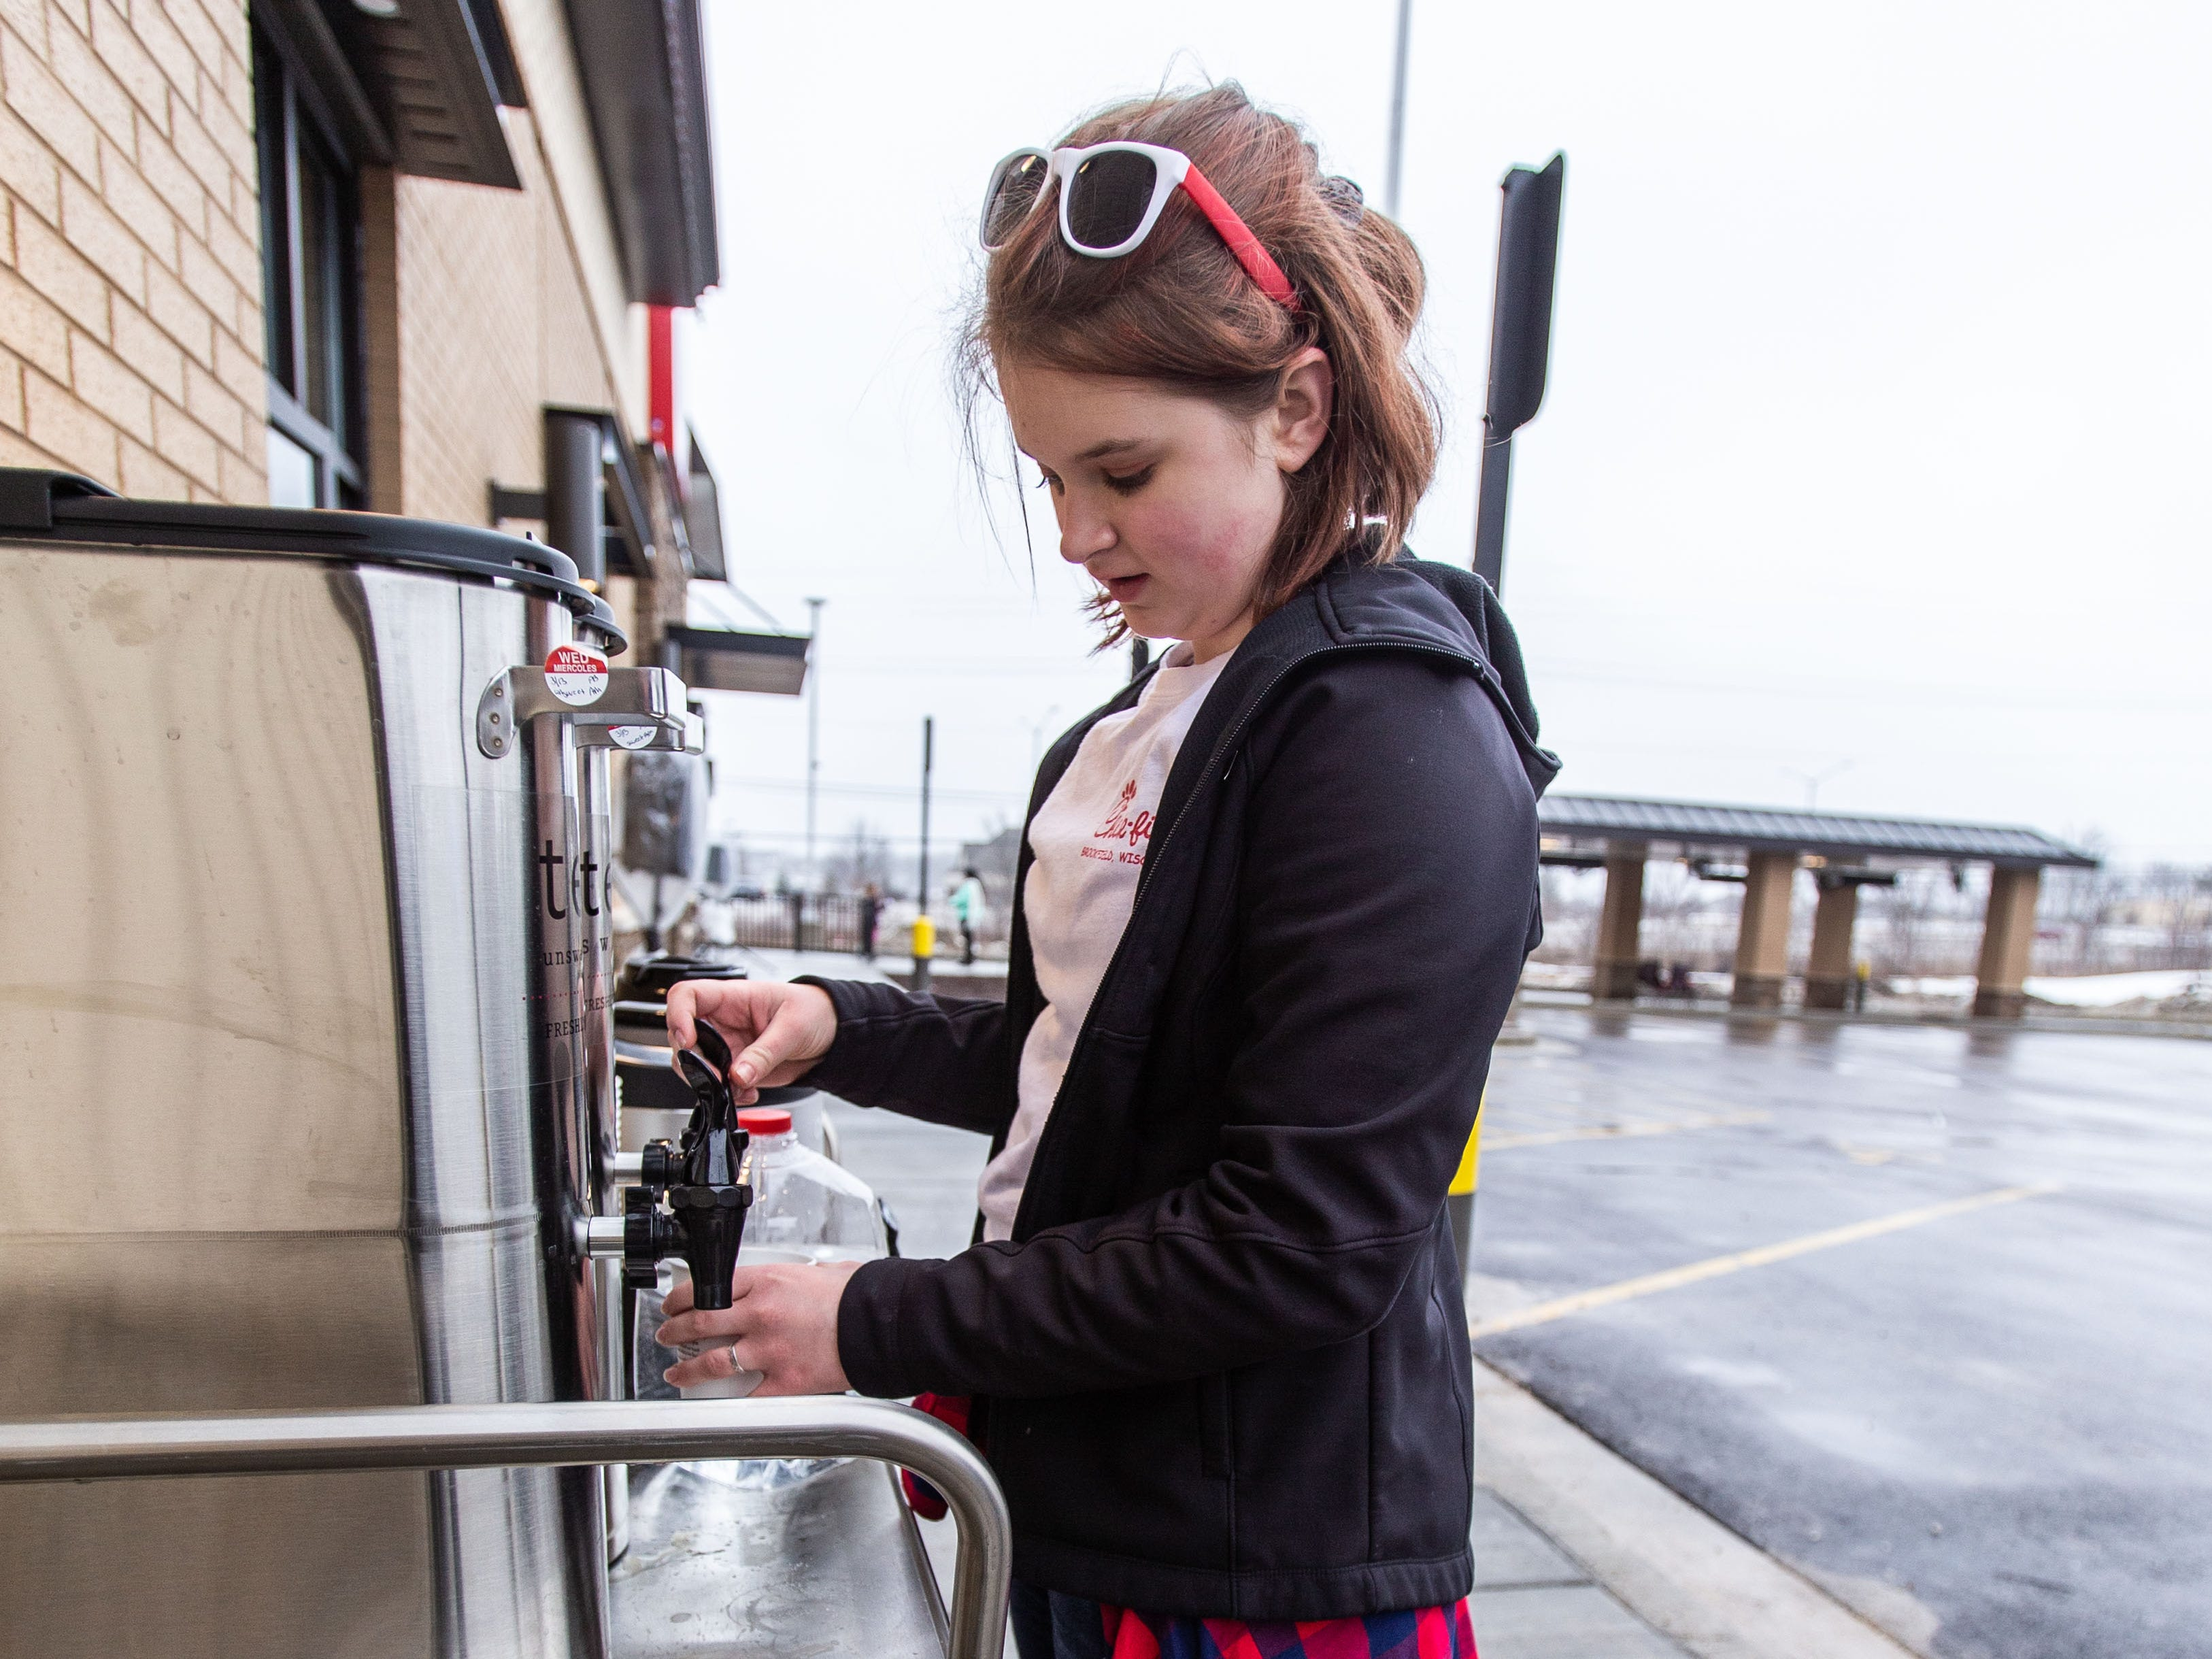 Allie Borkenhagen, 15, of Waukesha fills a cup of tea outside Pewaukee's new Chick-fil-A location at 1454 Capitol Drive on Wednesday, March 13, ahead of Thursday's grand opening. Chick-fil-A is holding The First 100 Camp Out contest which offers a year's worth of free Chick-fil-A to the first 100 participants.